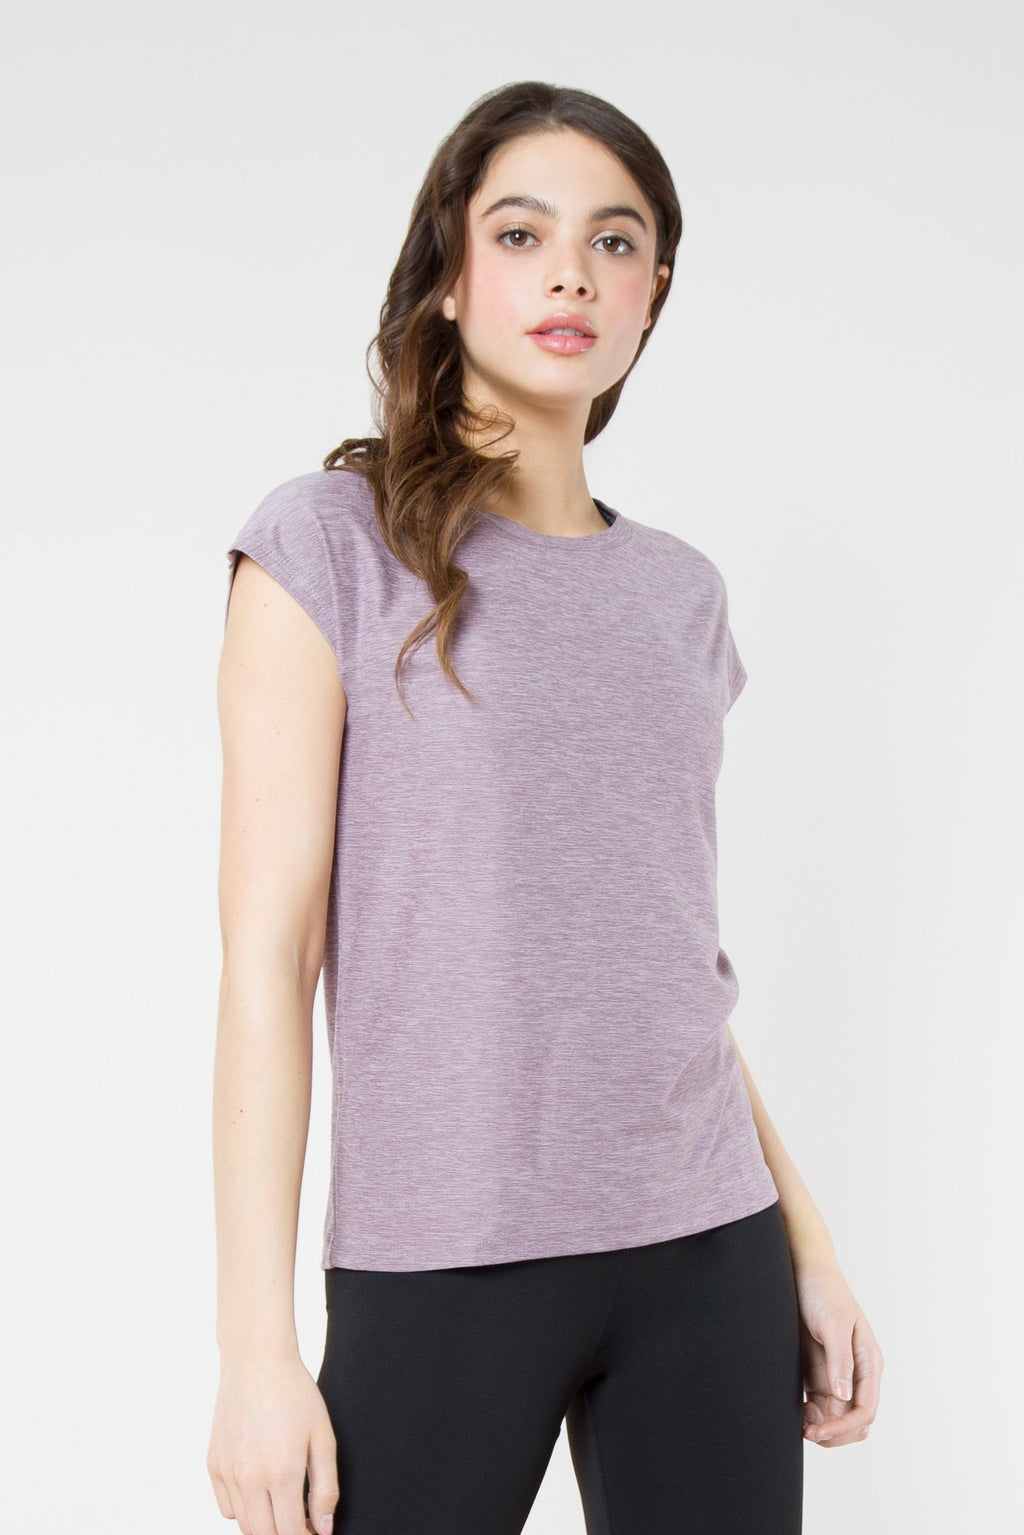 Day-To-Day Tee Ultra Soft